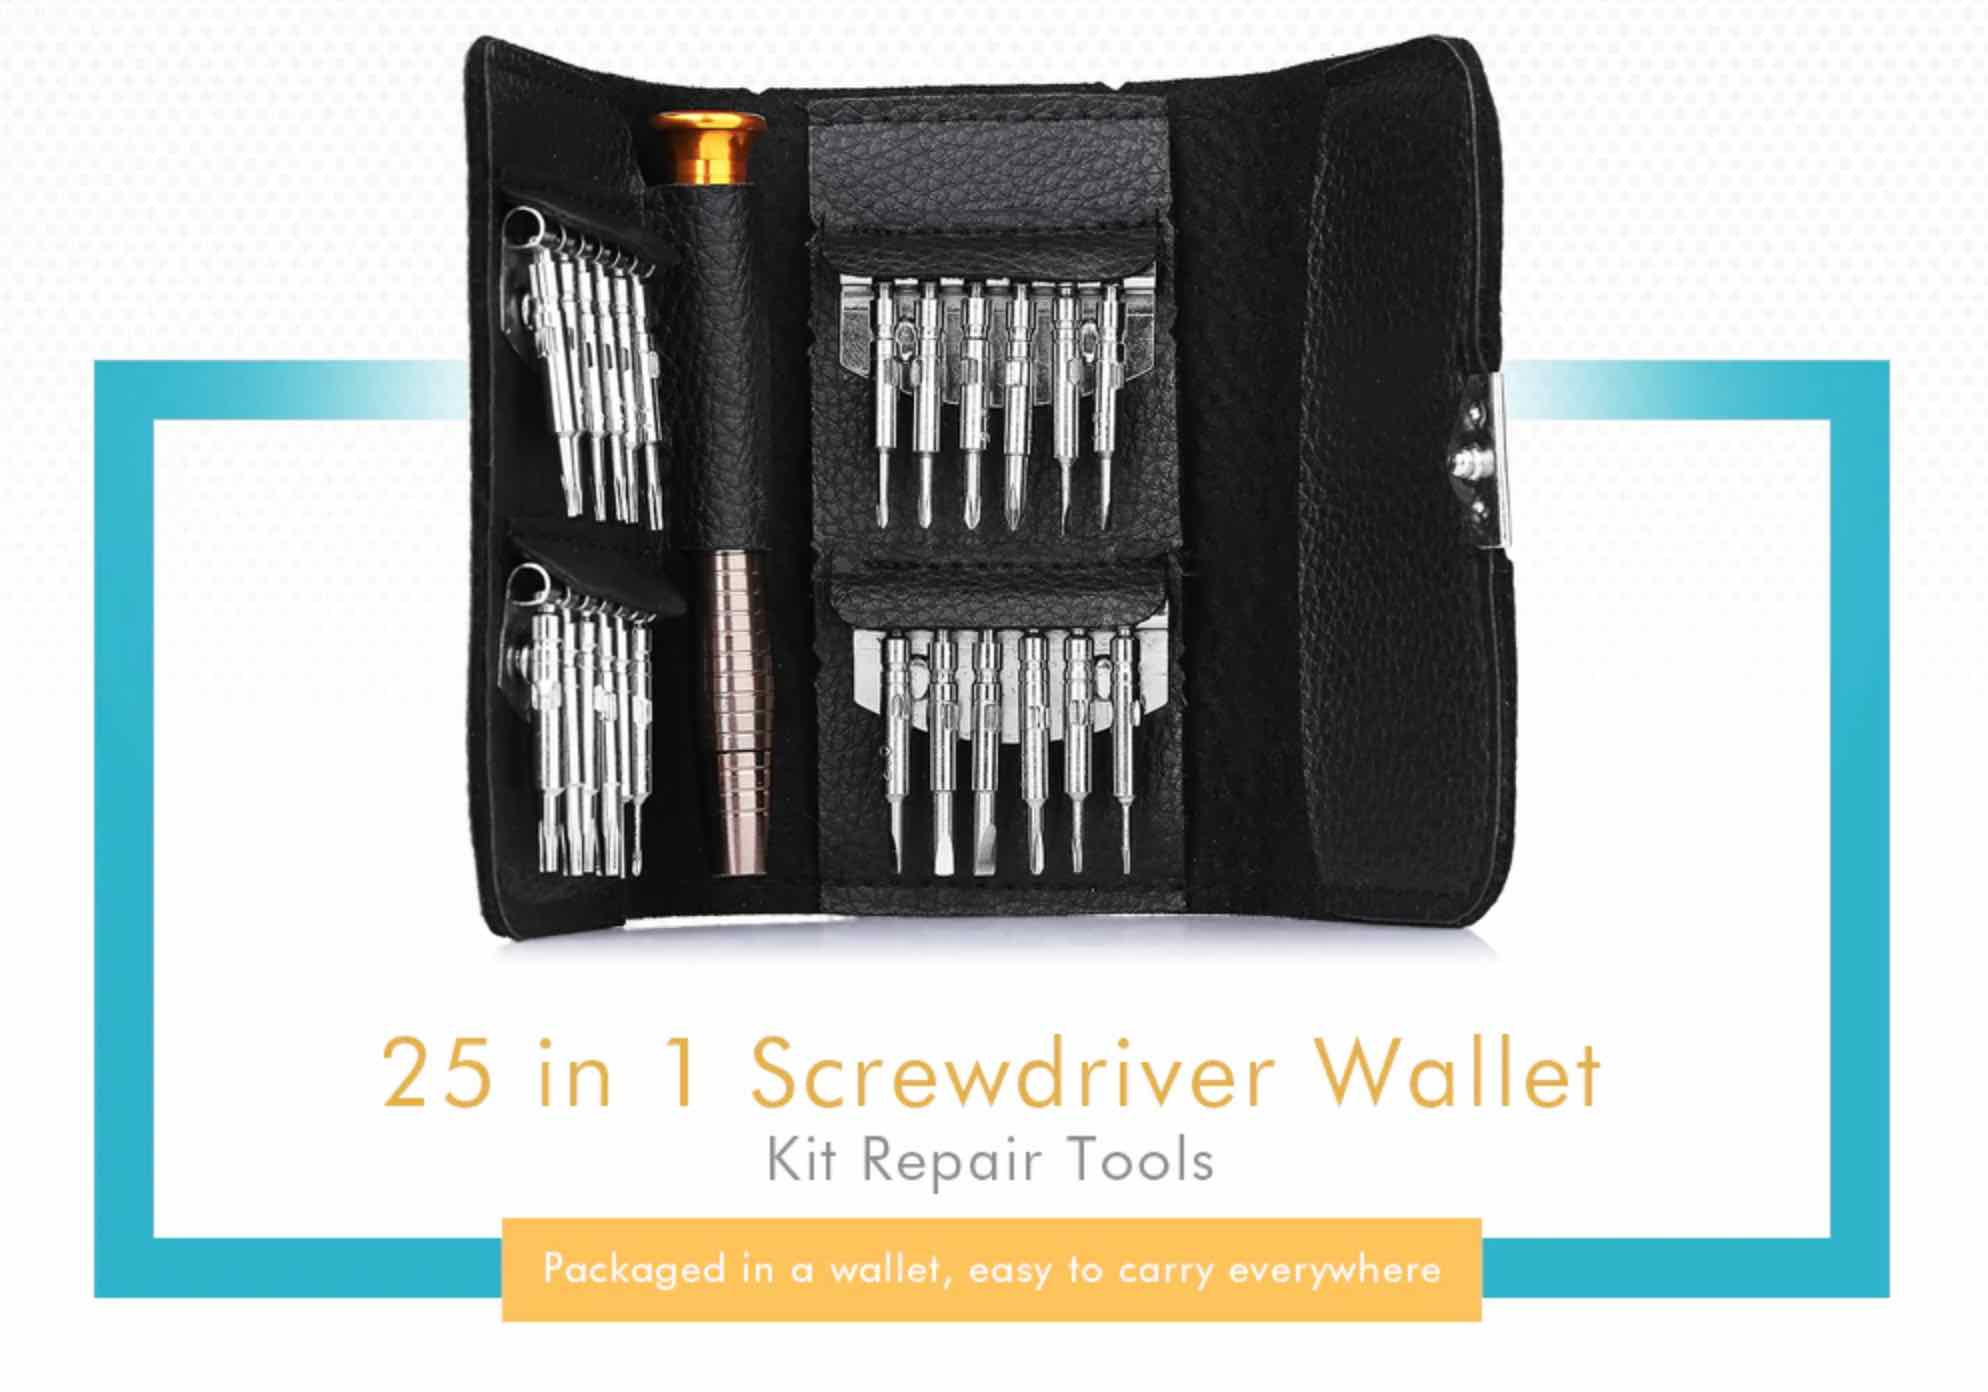 GearBest: 25 in 1 Screwdriver Wallet Kit Repair Tools